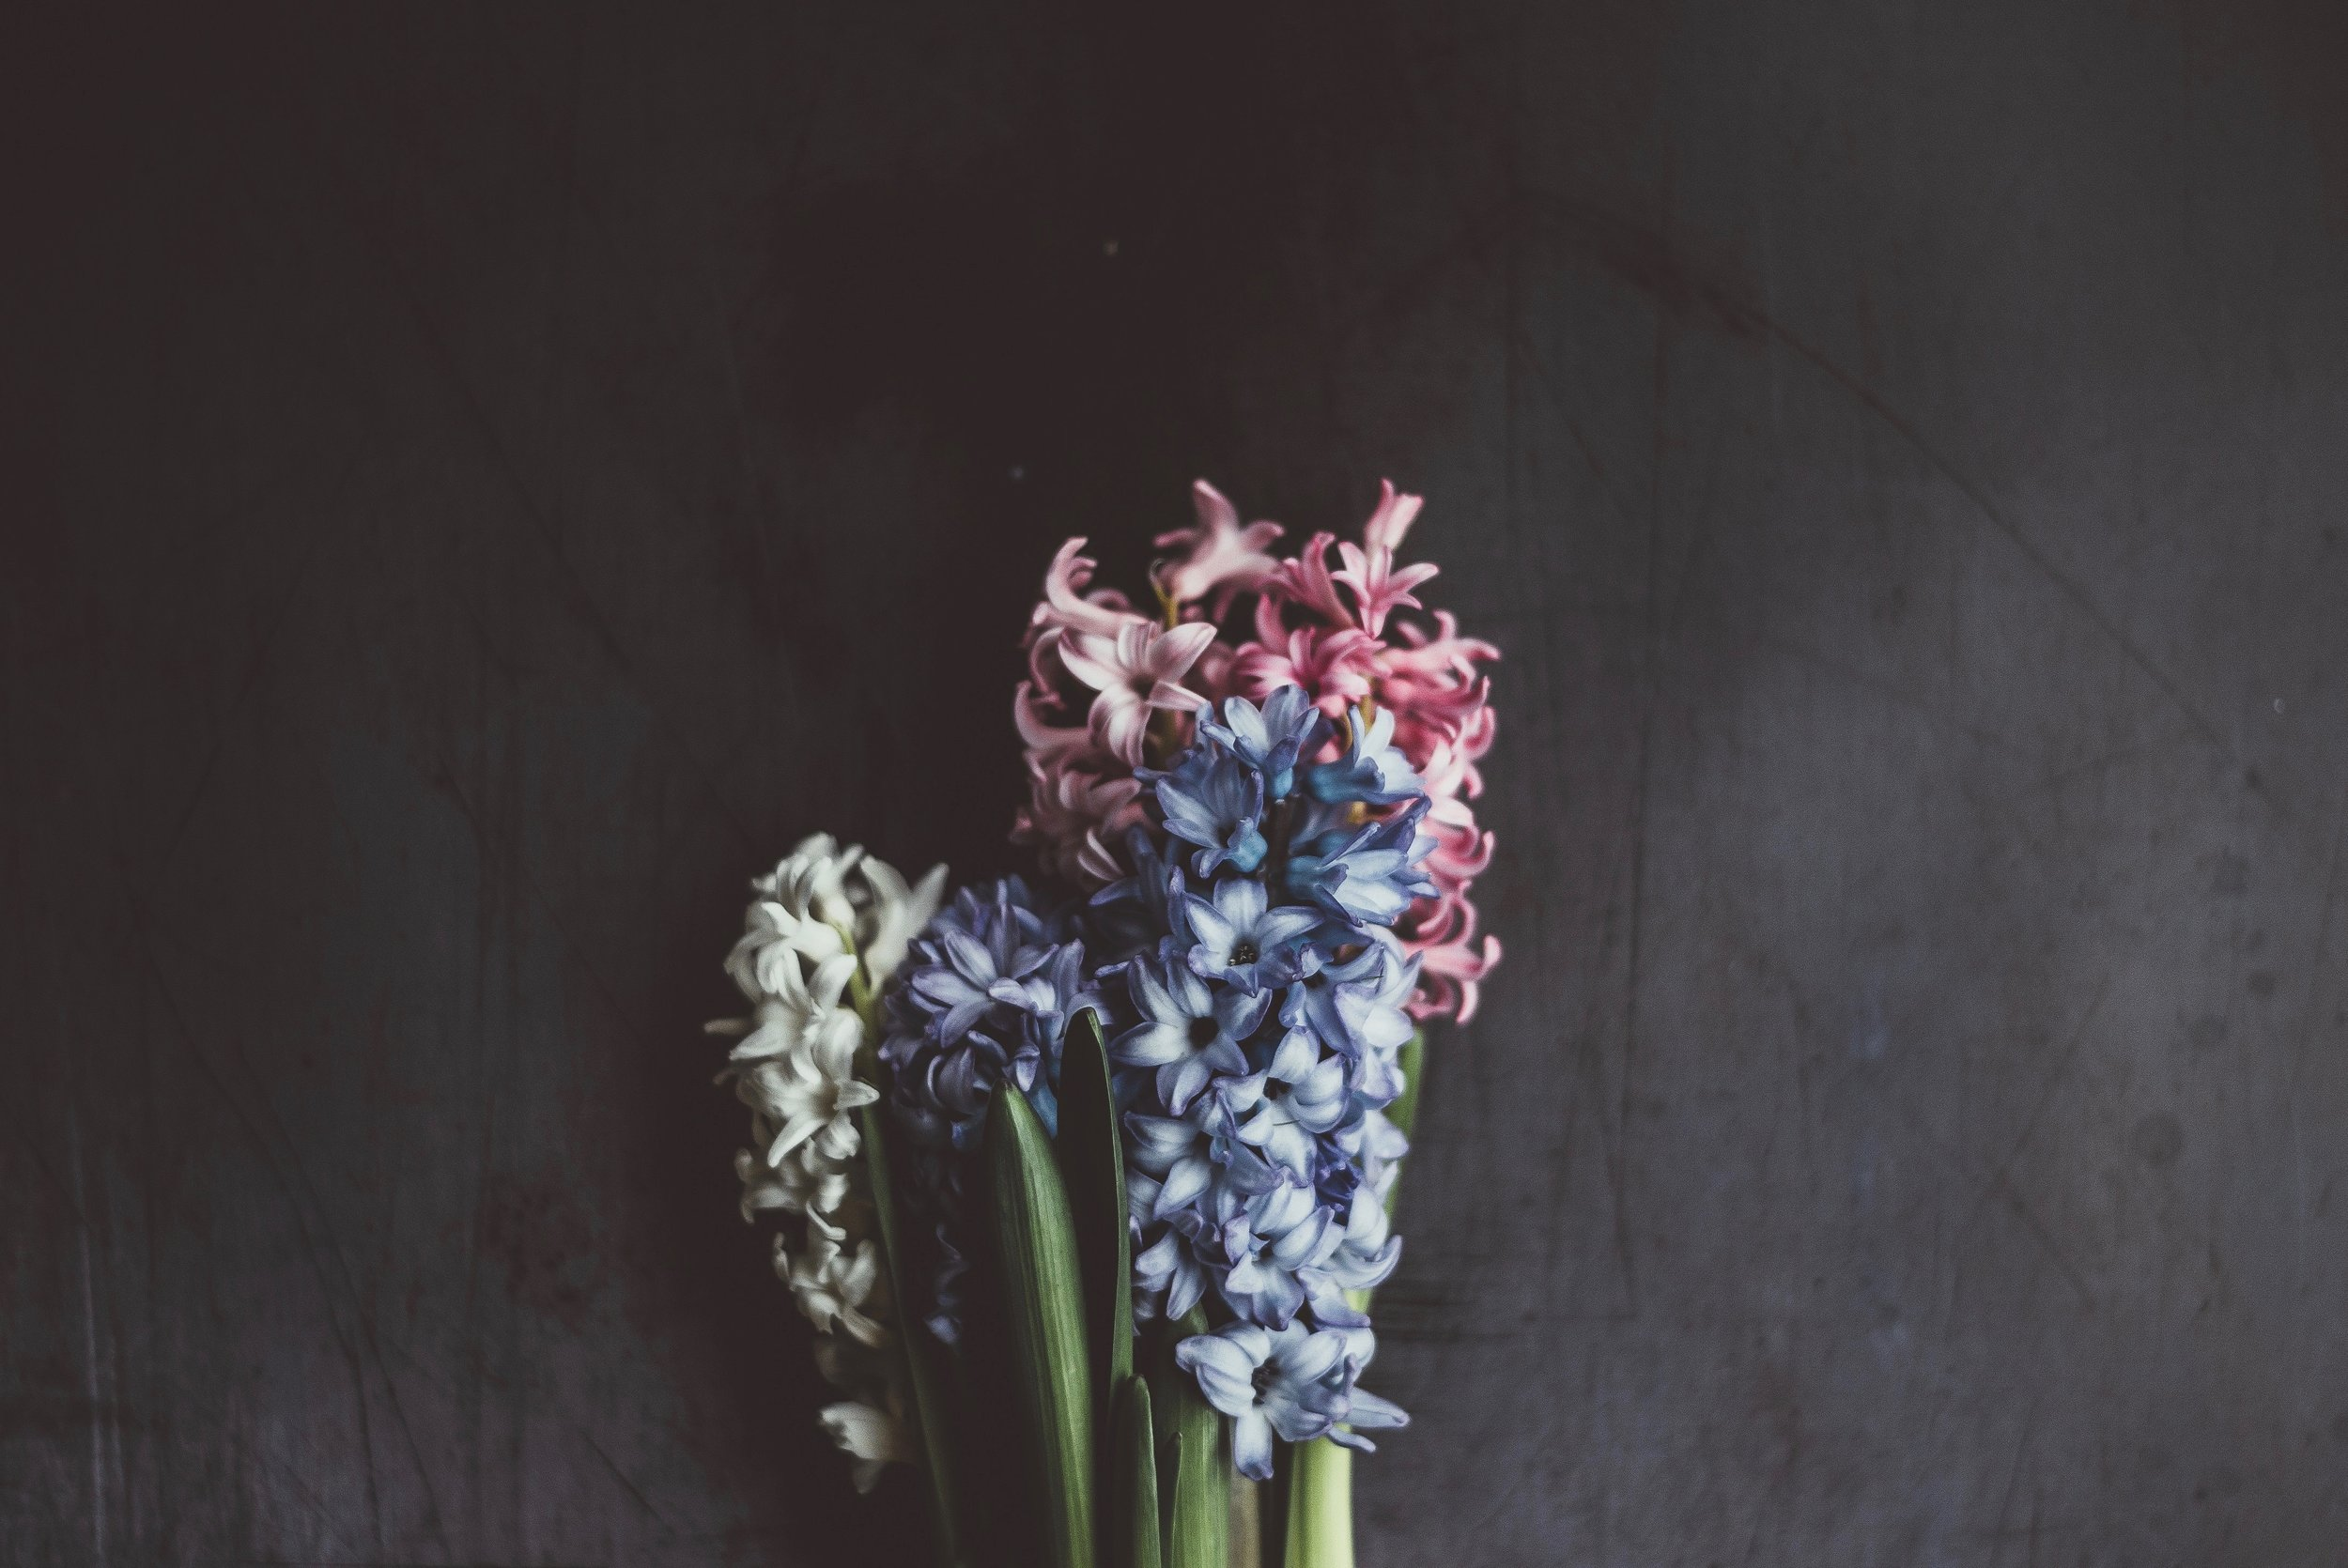 List of spring flowers hyacinth1.jpg